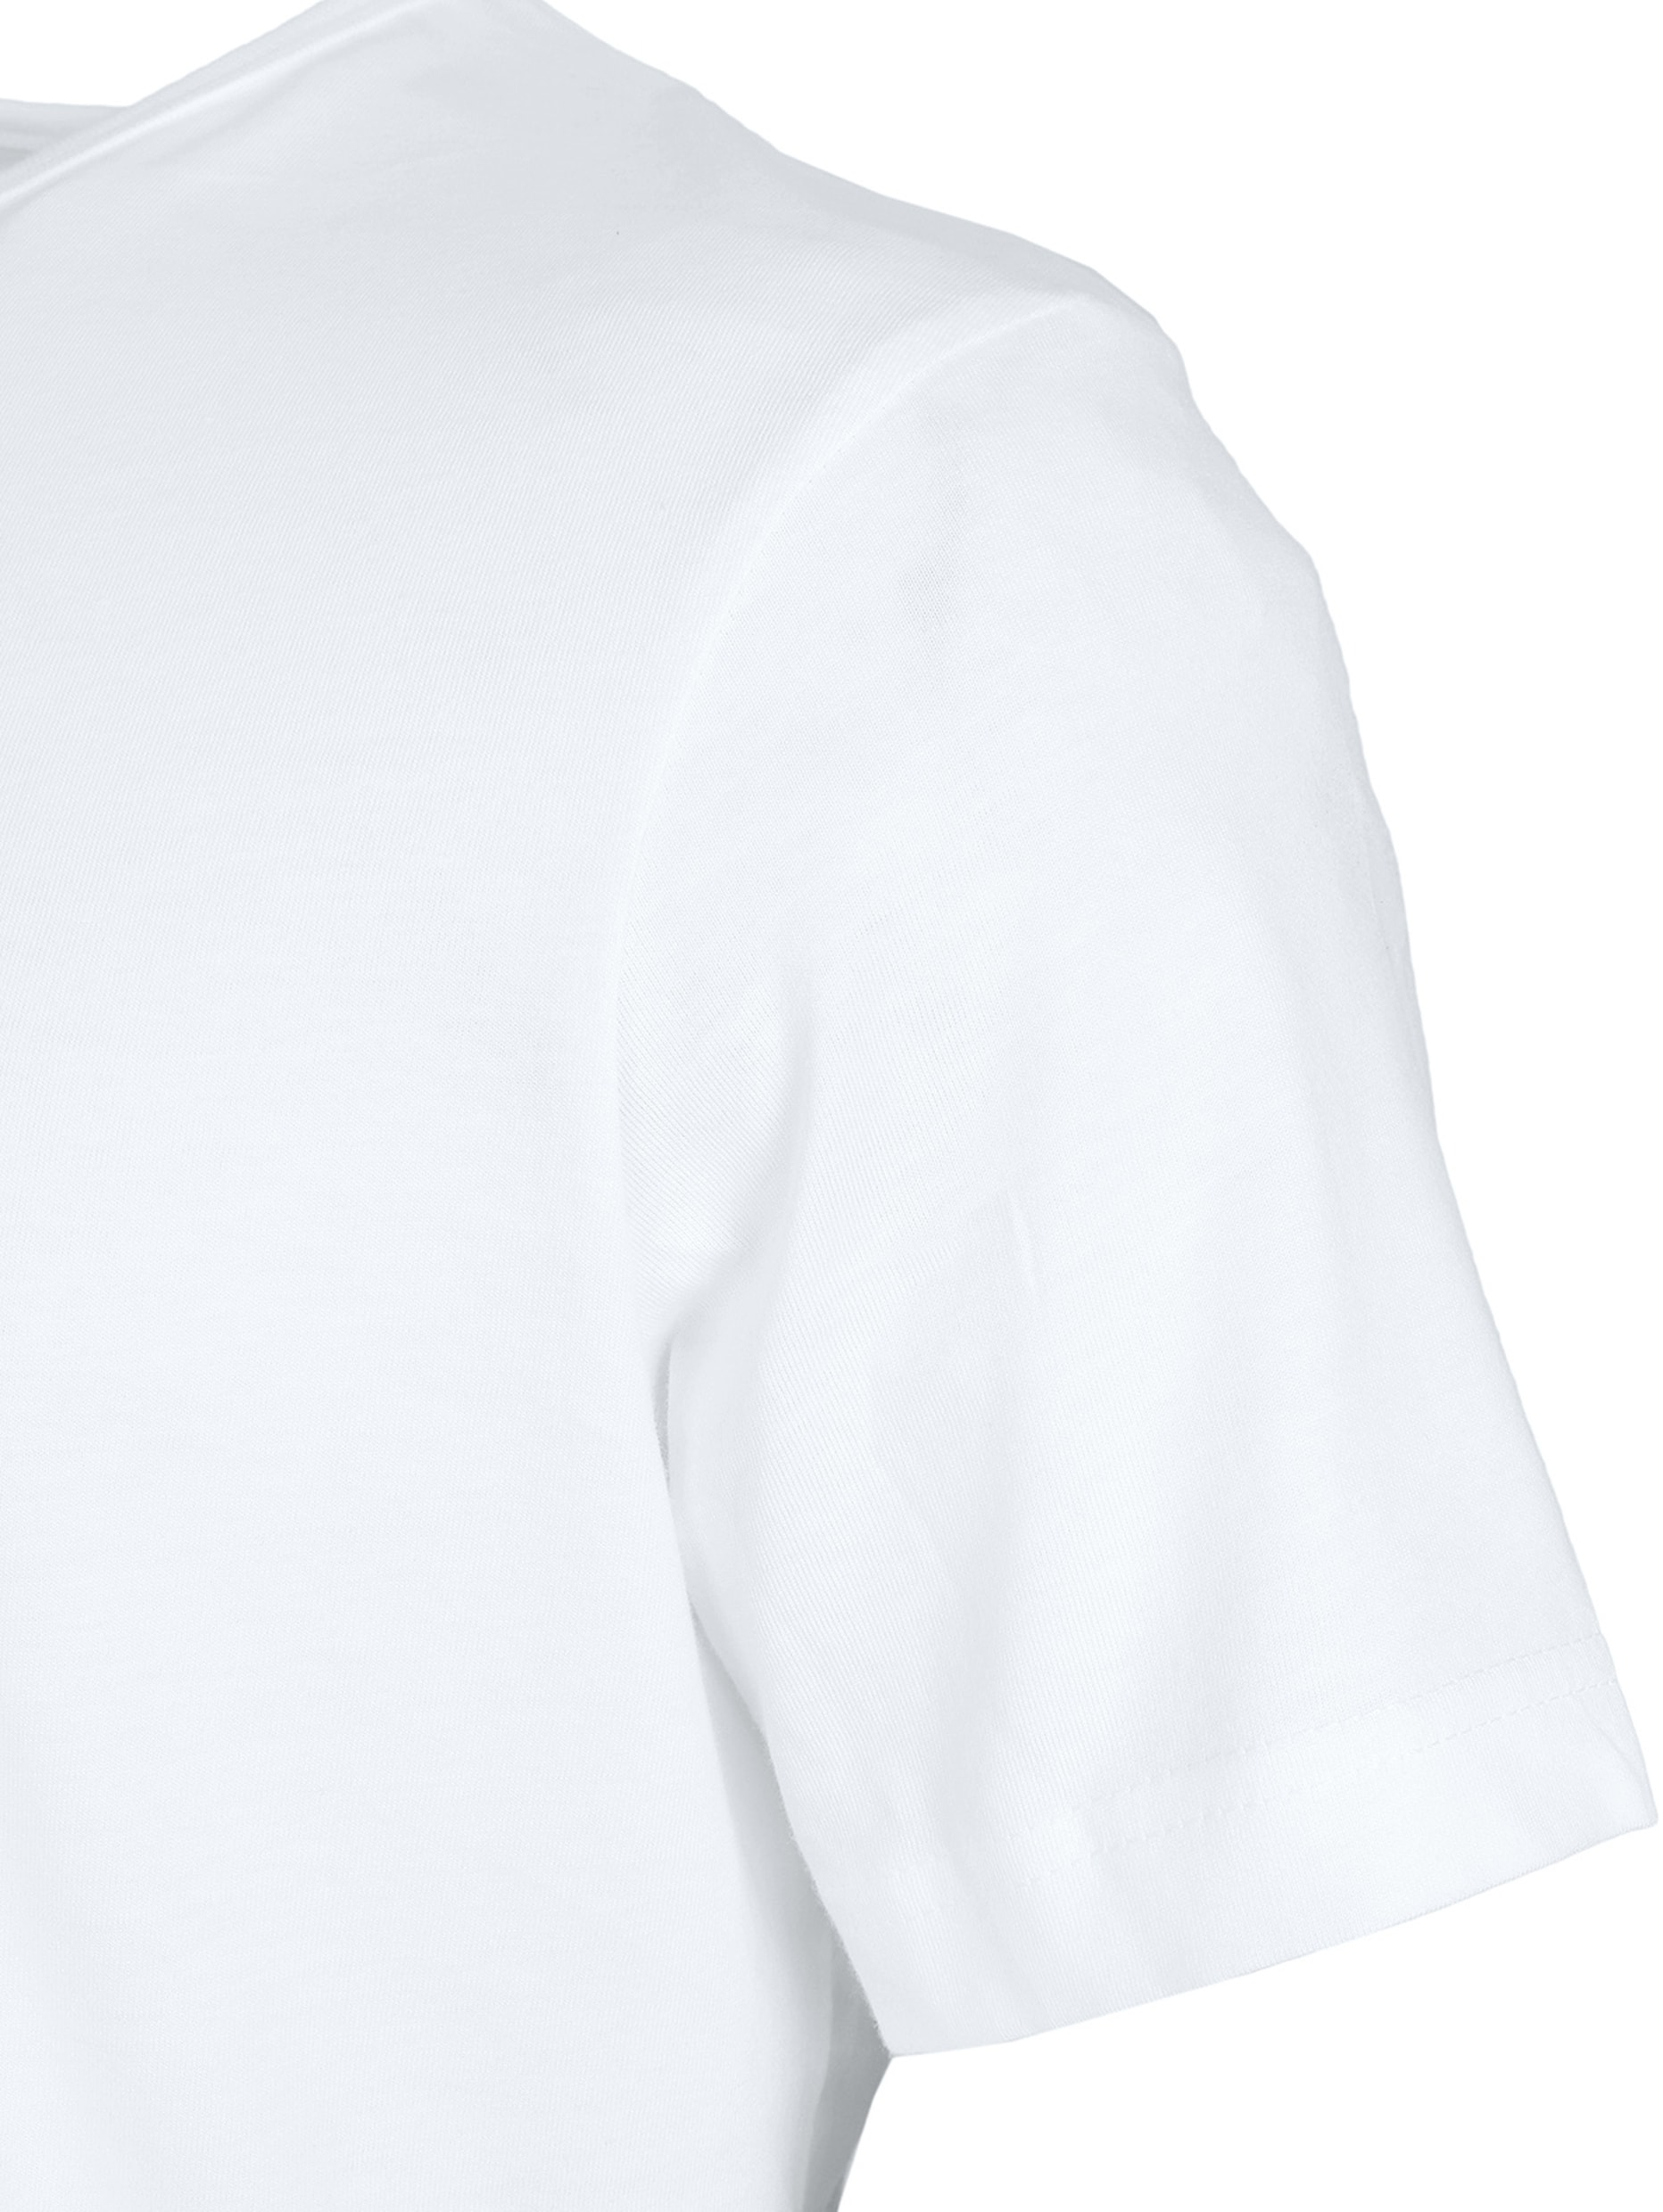 White T-shirt O-Neck 6-Pack foto 4